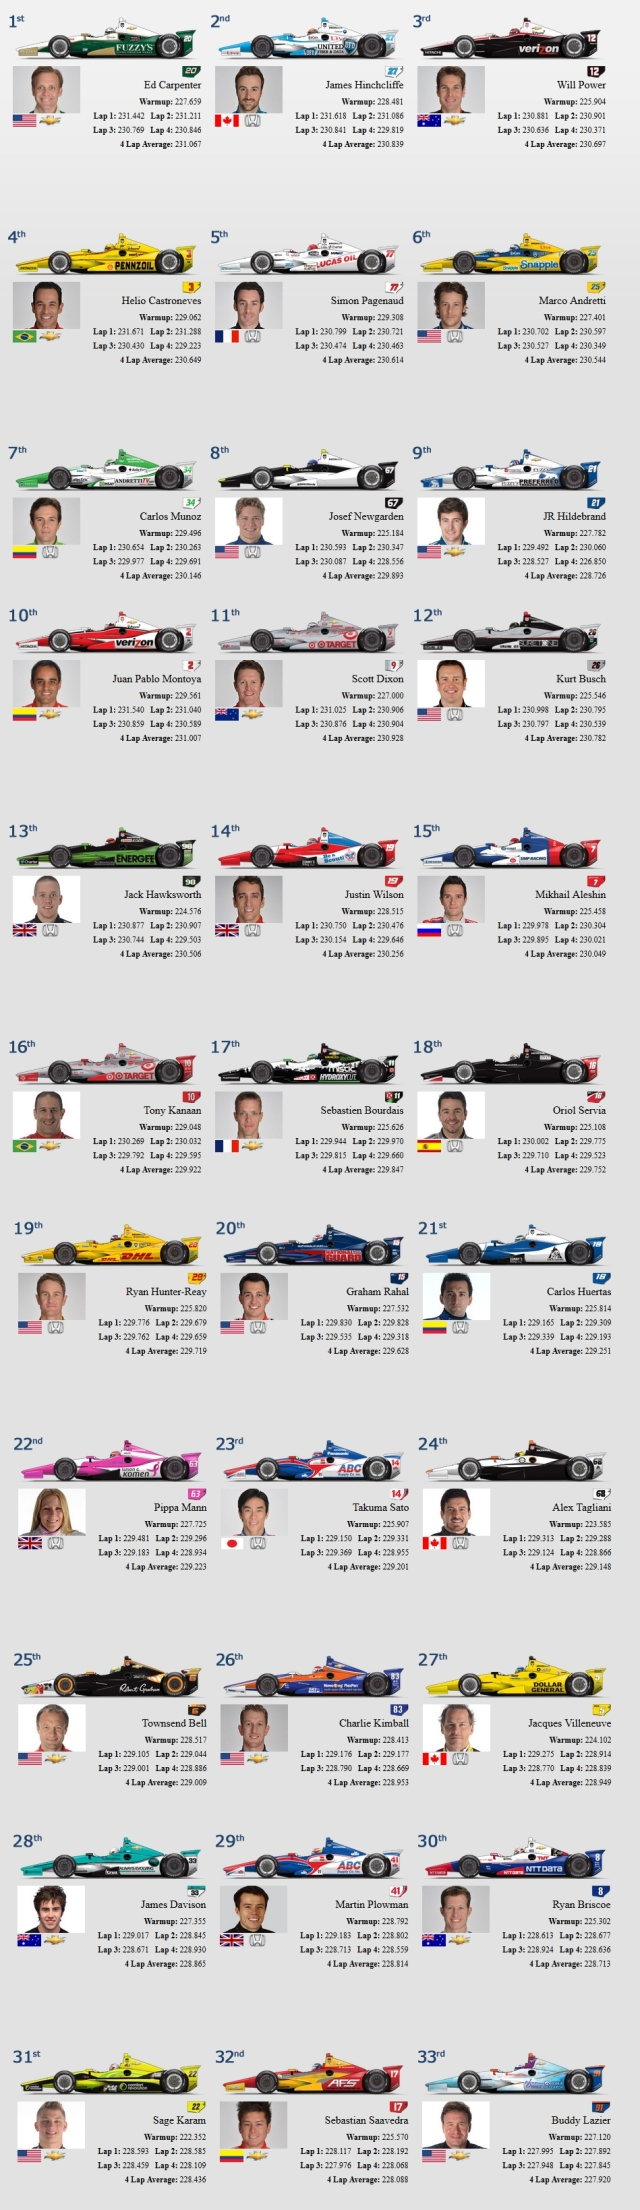 Indy 500 2014 Starting Grid